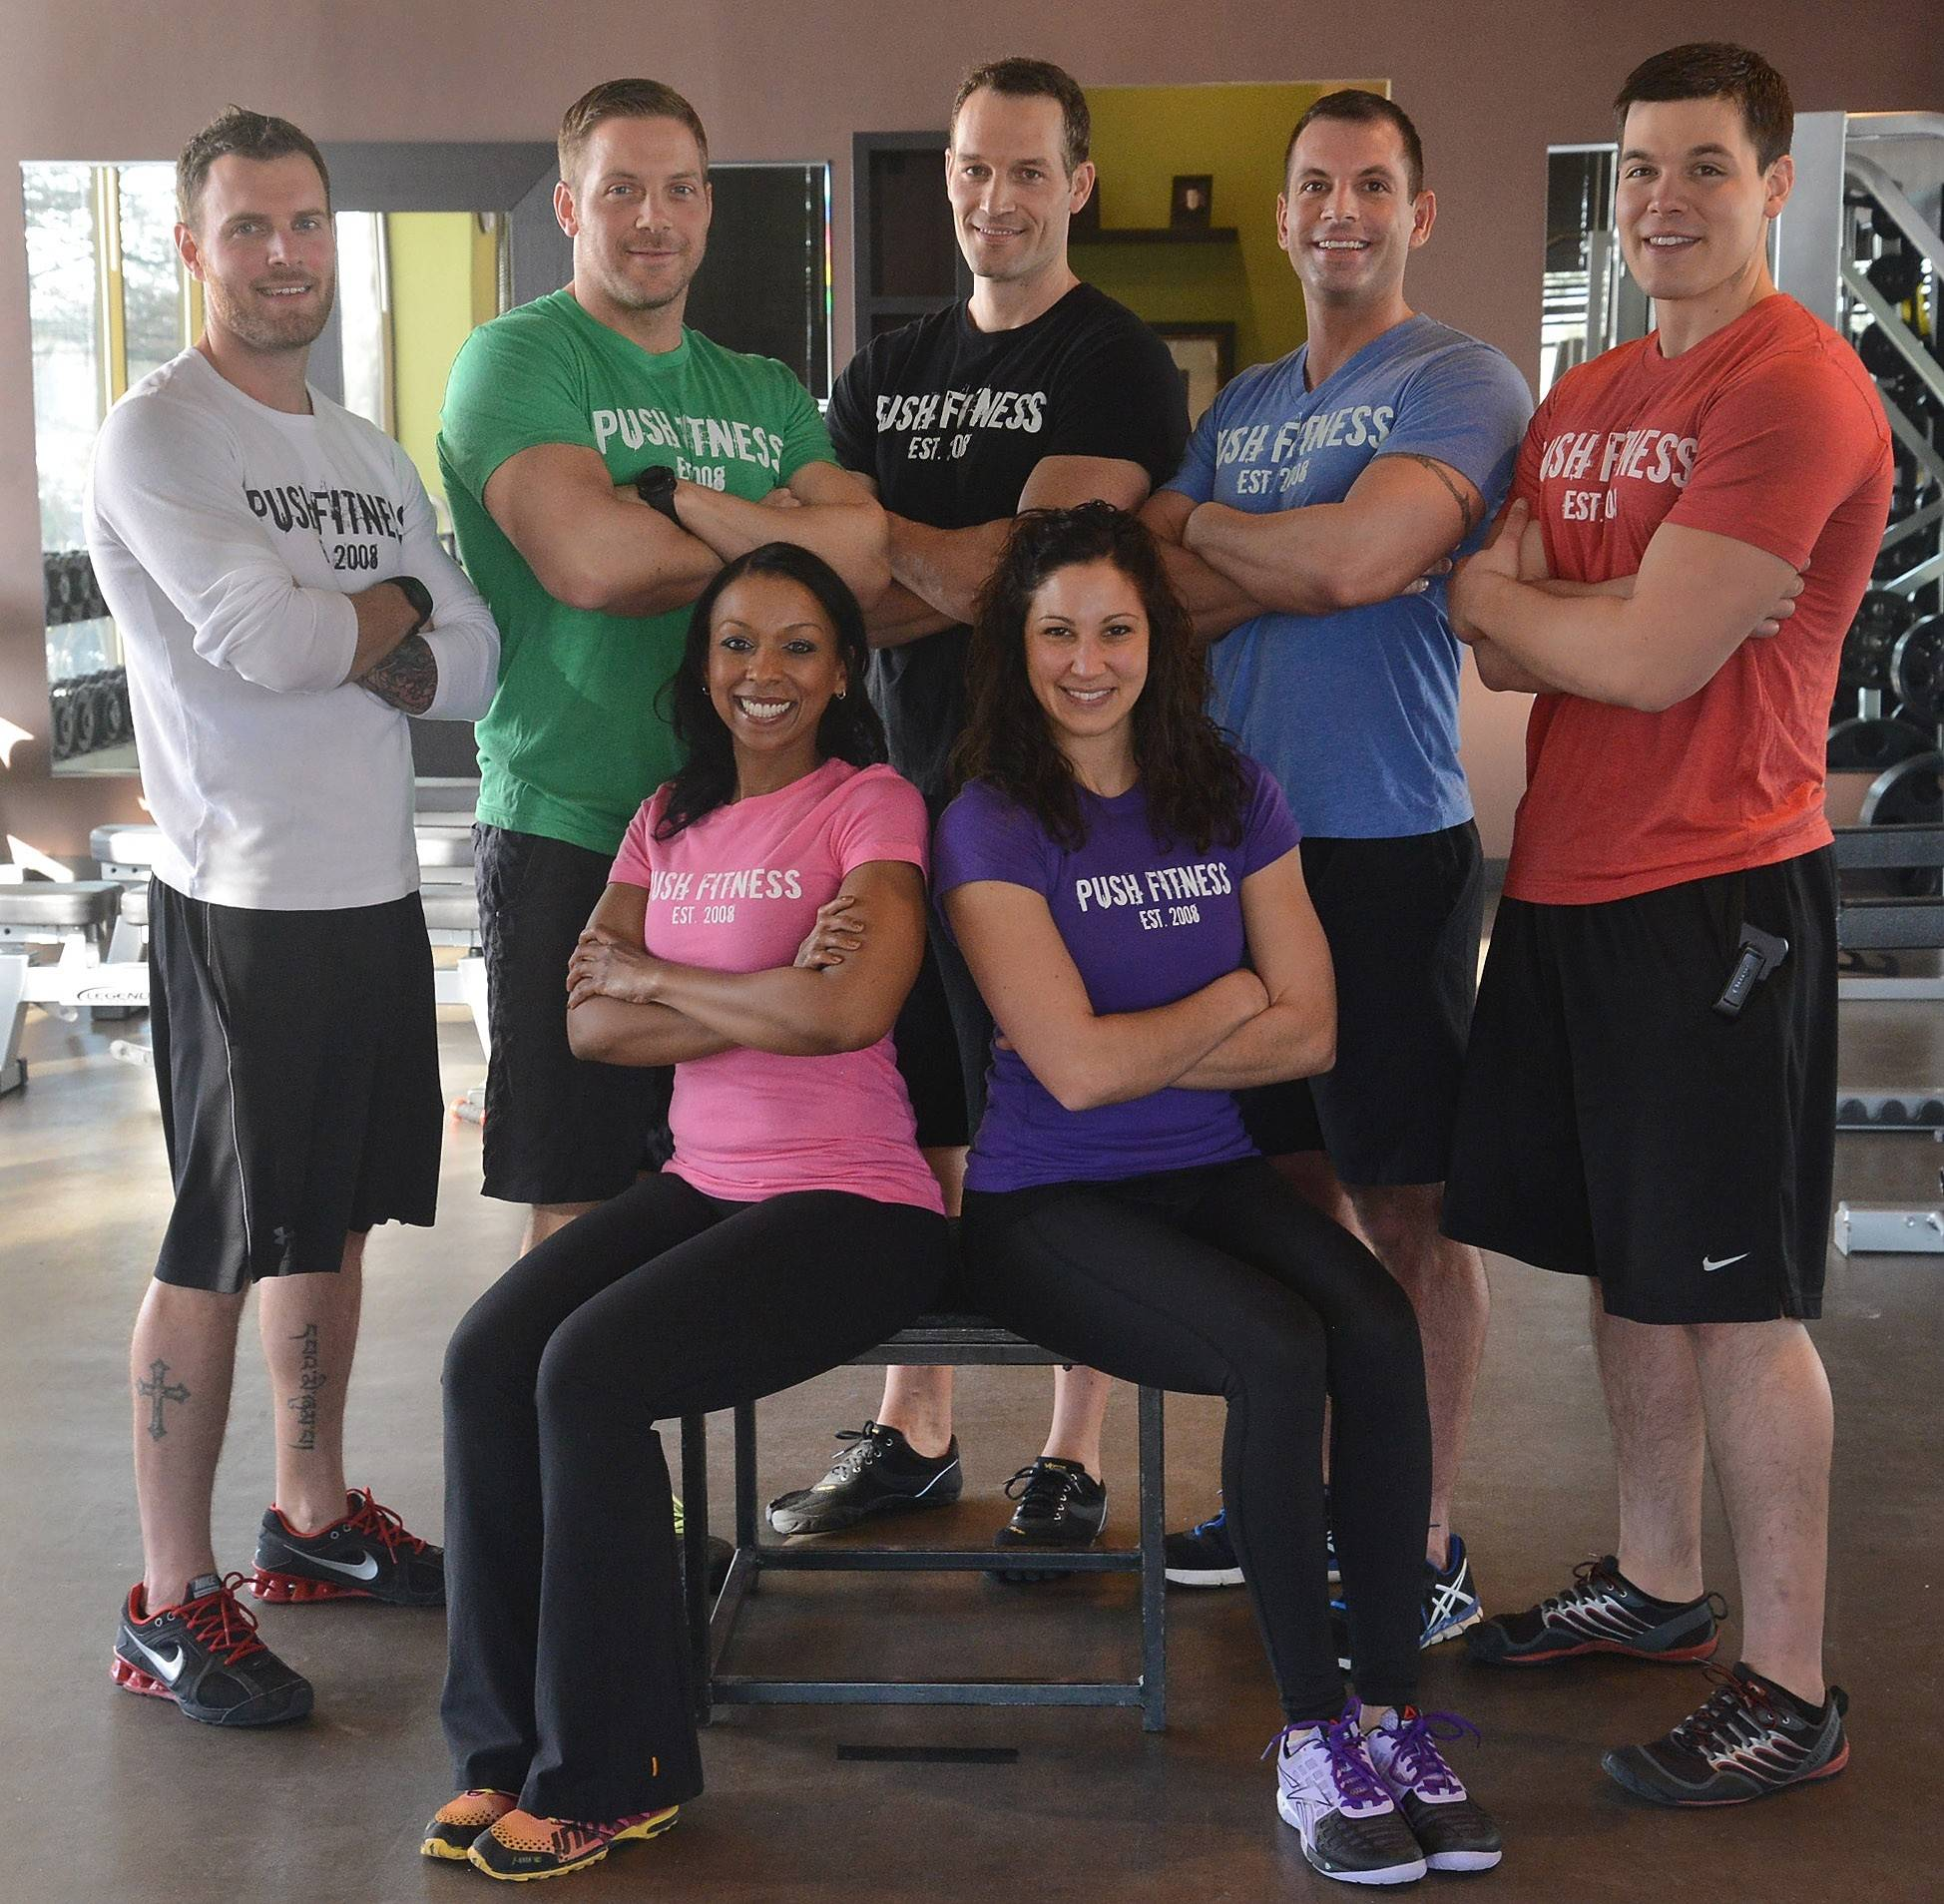 These seven trainers are the driving force behind the 2014 Fittest Loser contestants. Seated, Michelle Amsden, left, and Lindsay Vigna. Standing, from left, Brad Parotto, Brodie Medlock, Joshua Steckler, Steve Amsden and Wade Merrill.